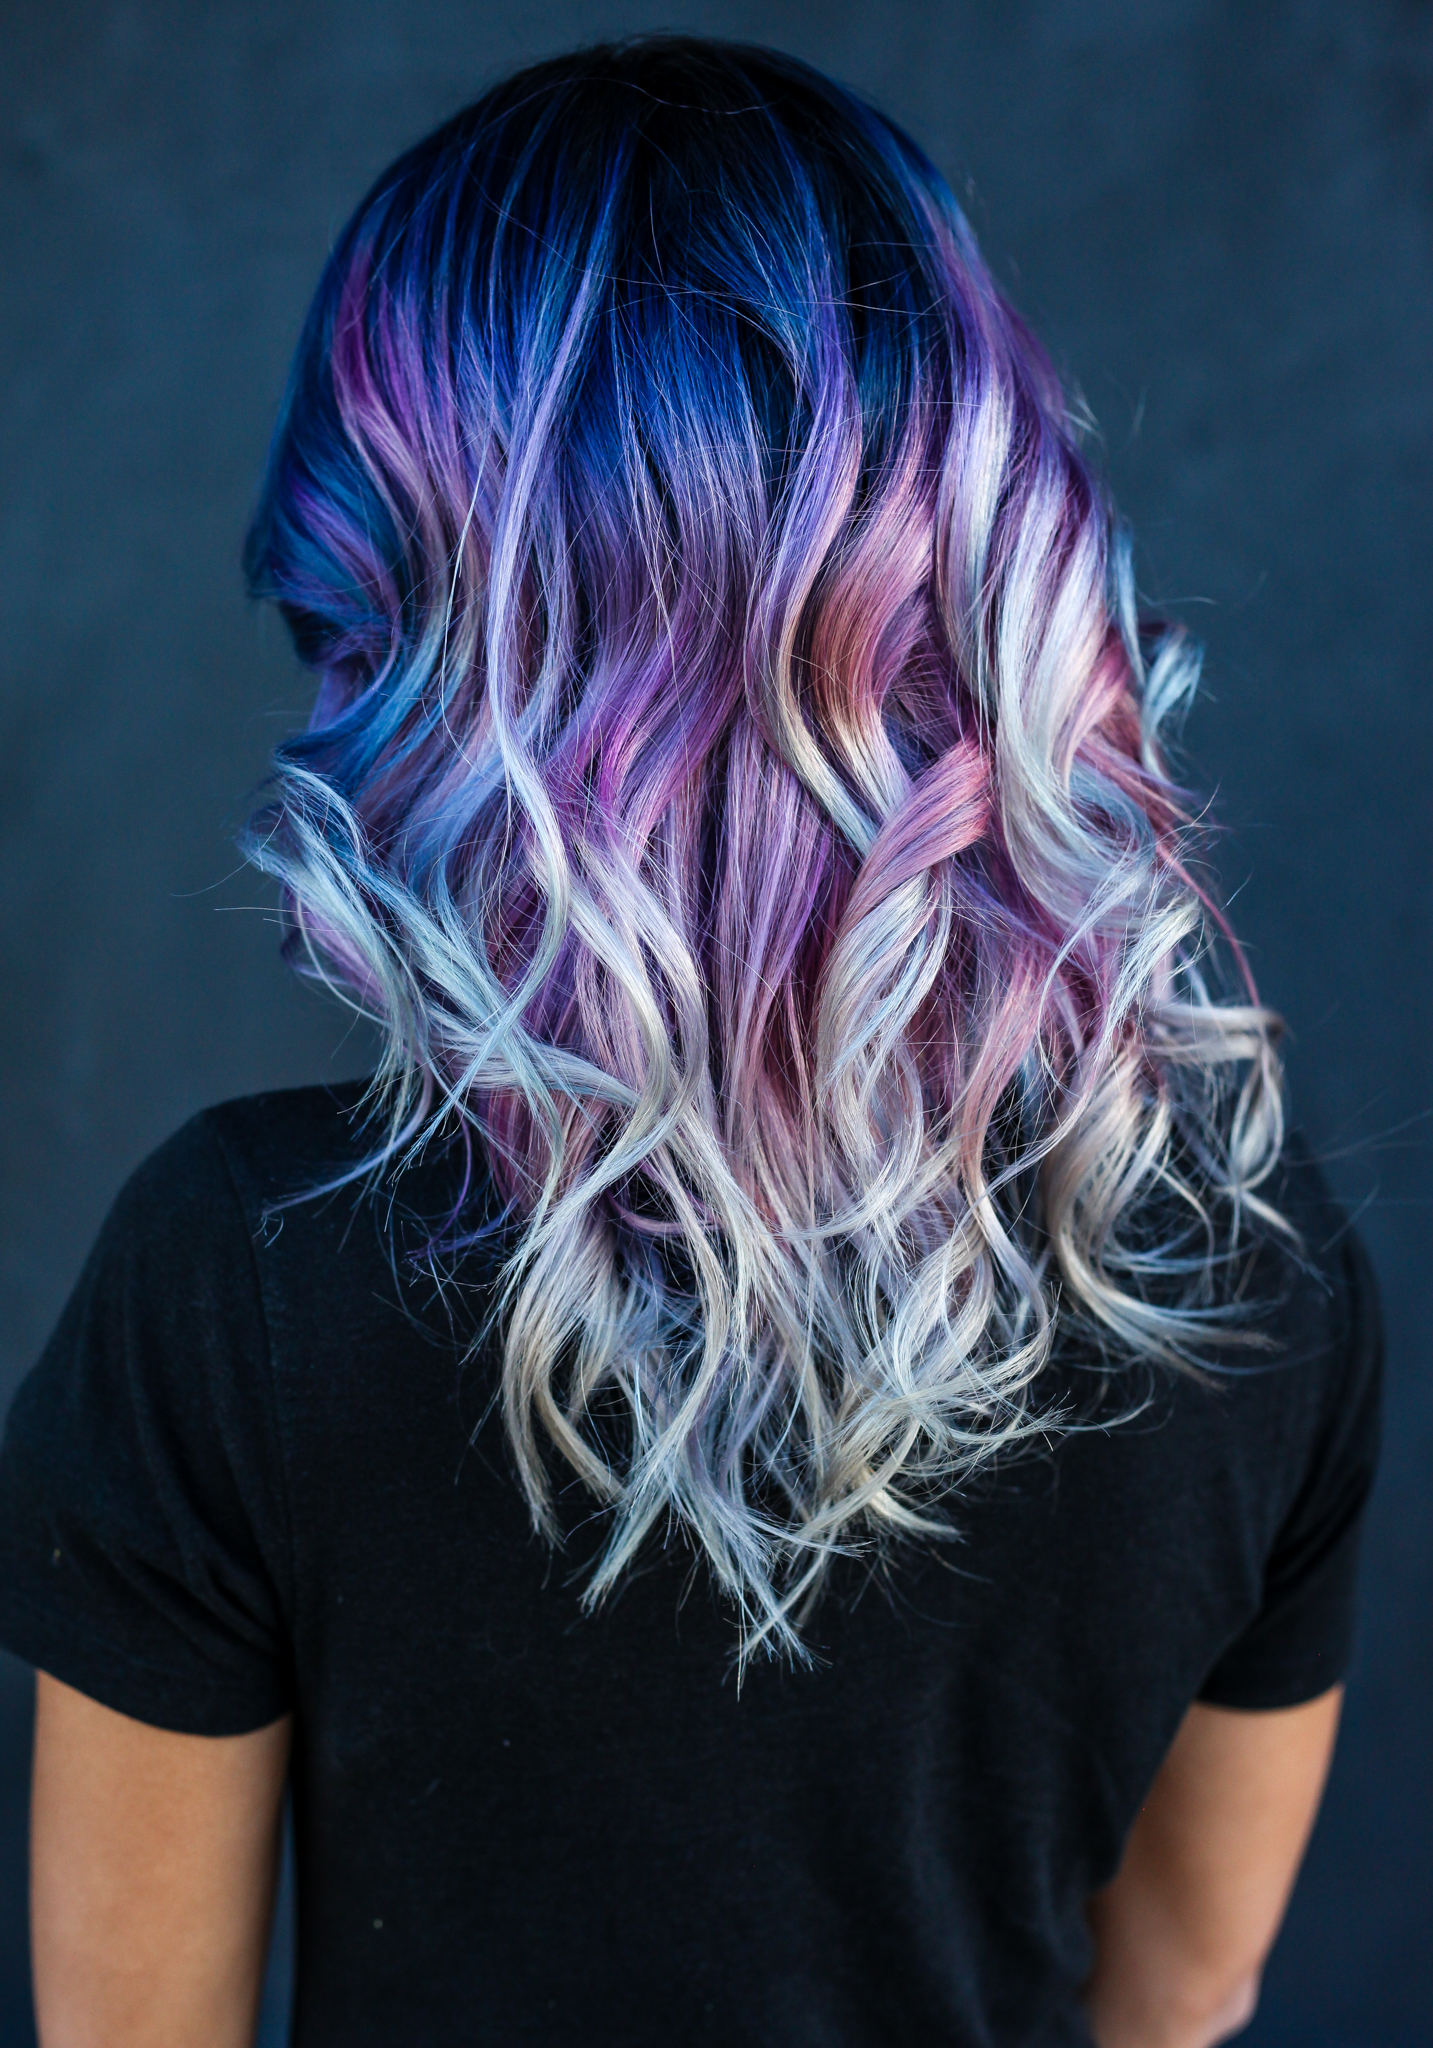 Unicorn Hair Loveravayna Lifestyle With Lagniappe